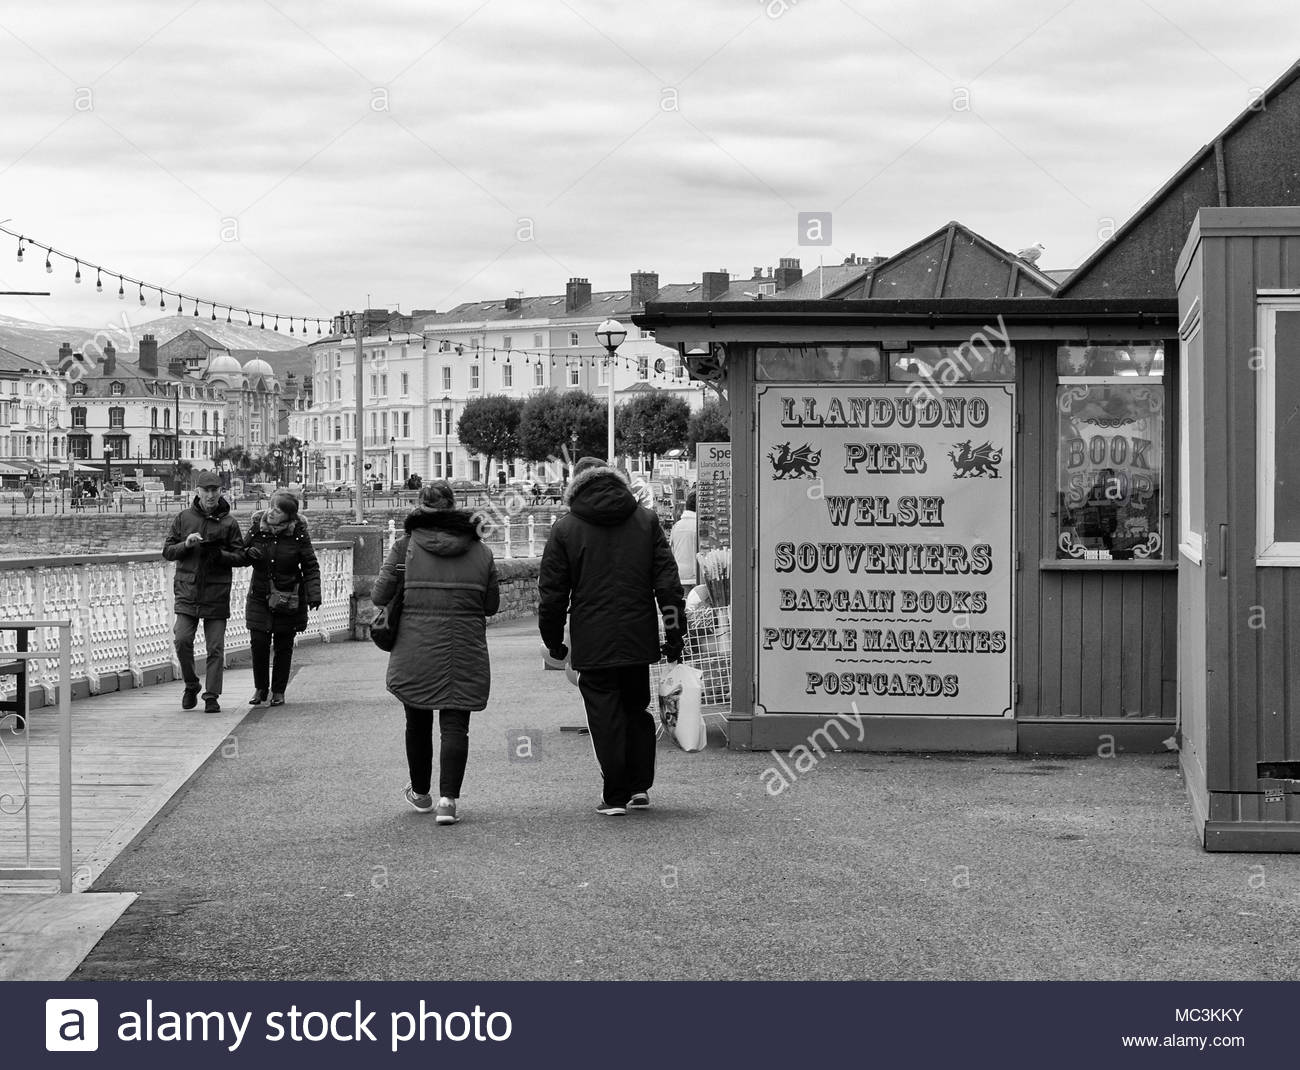 People walking on the promenade in the welsh seaside town of Llandudno in north wales uk - Stock Image